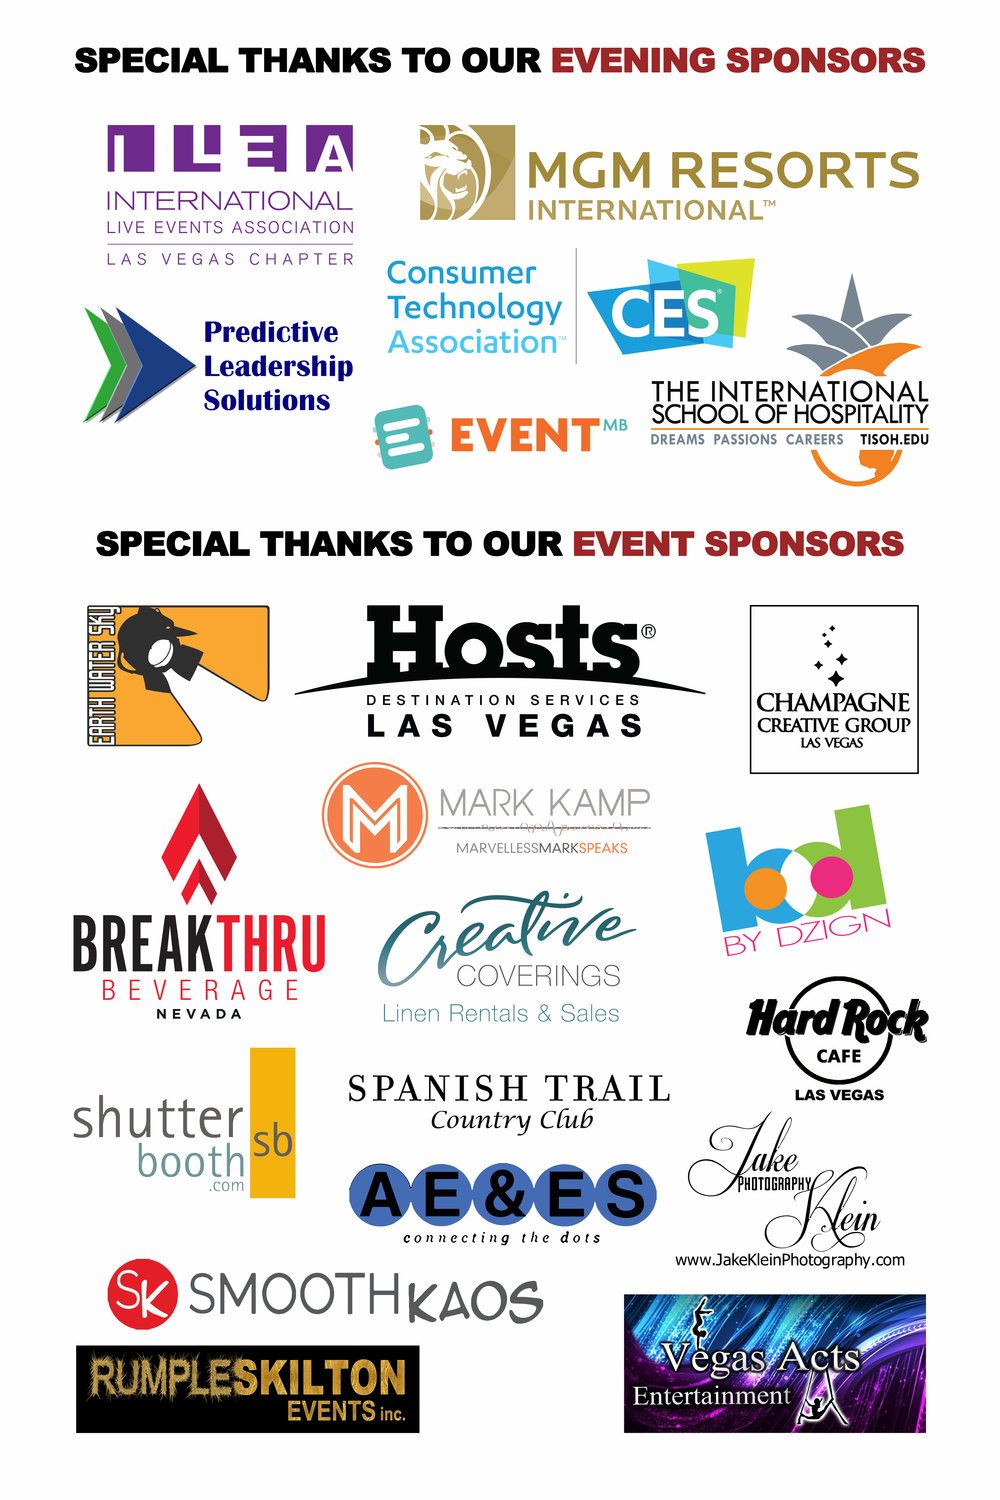 2017 Spirit of Hospitality Evening & Event Sponsors - Special thanks to our evening and event sponsors for the 2017 TSYLF Spirit of Hospitality Awards.